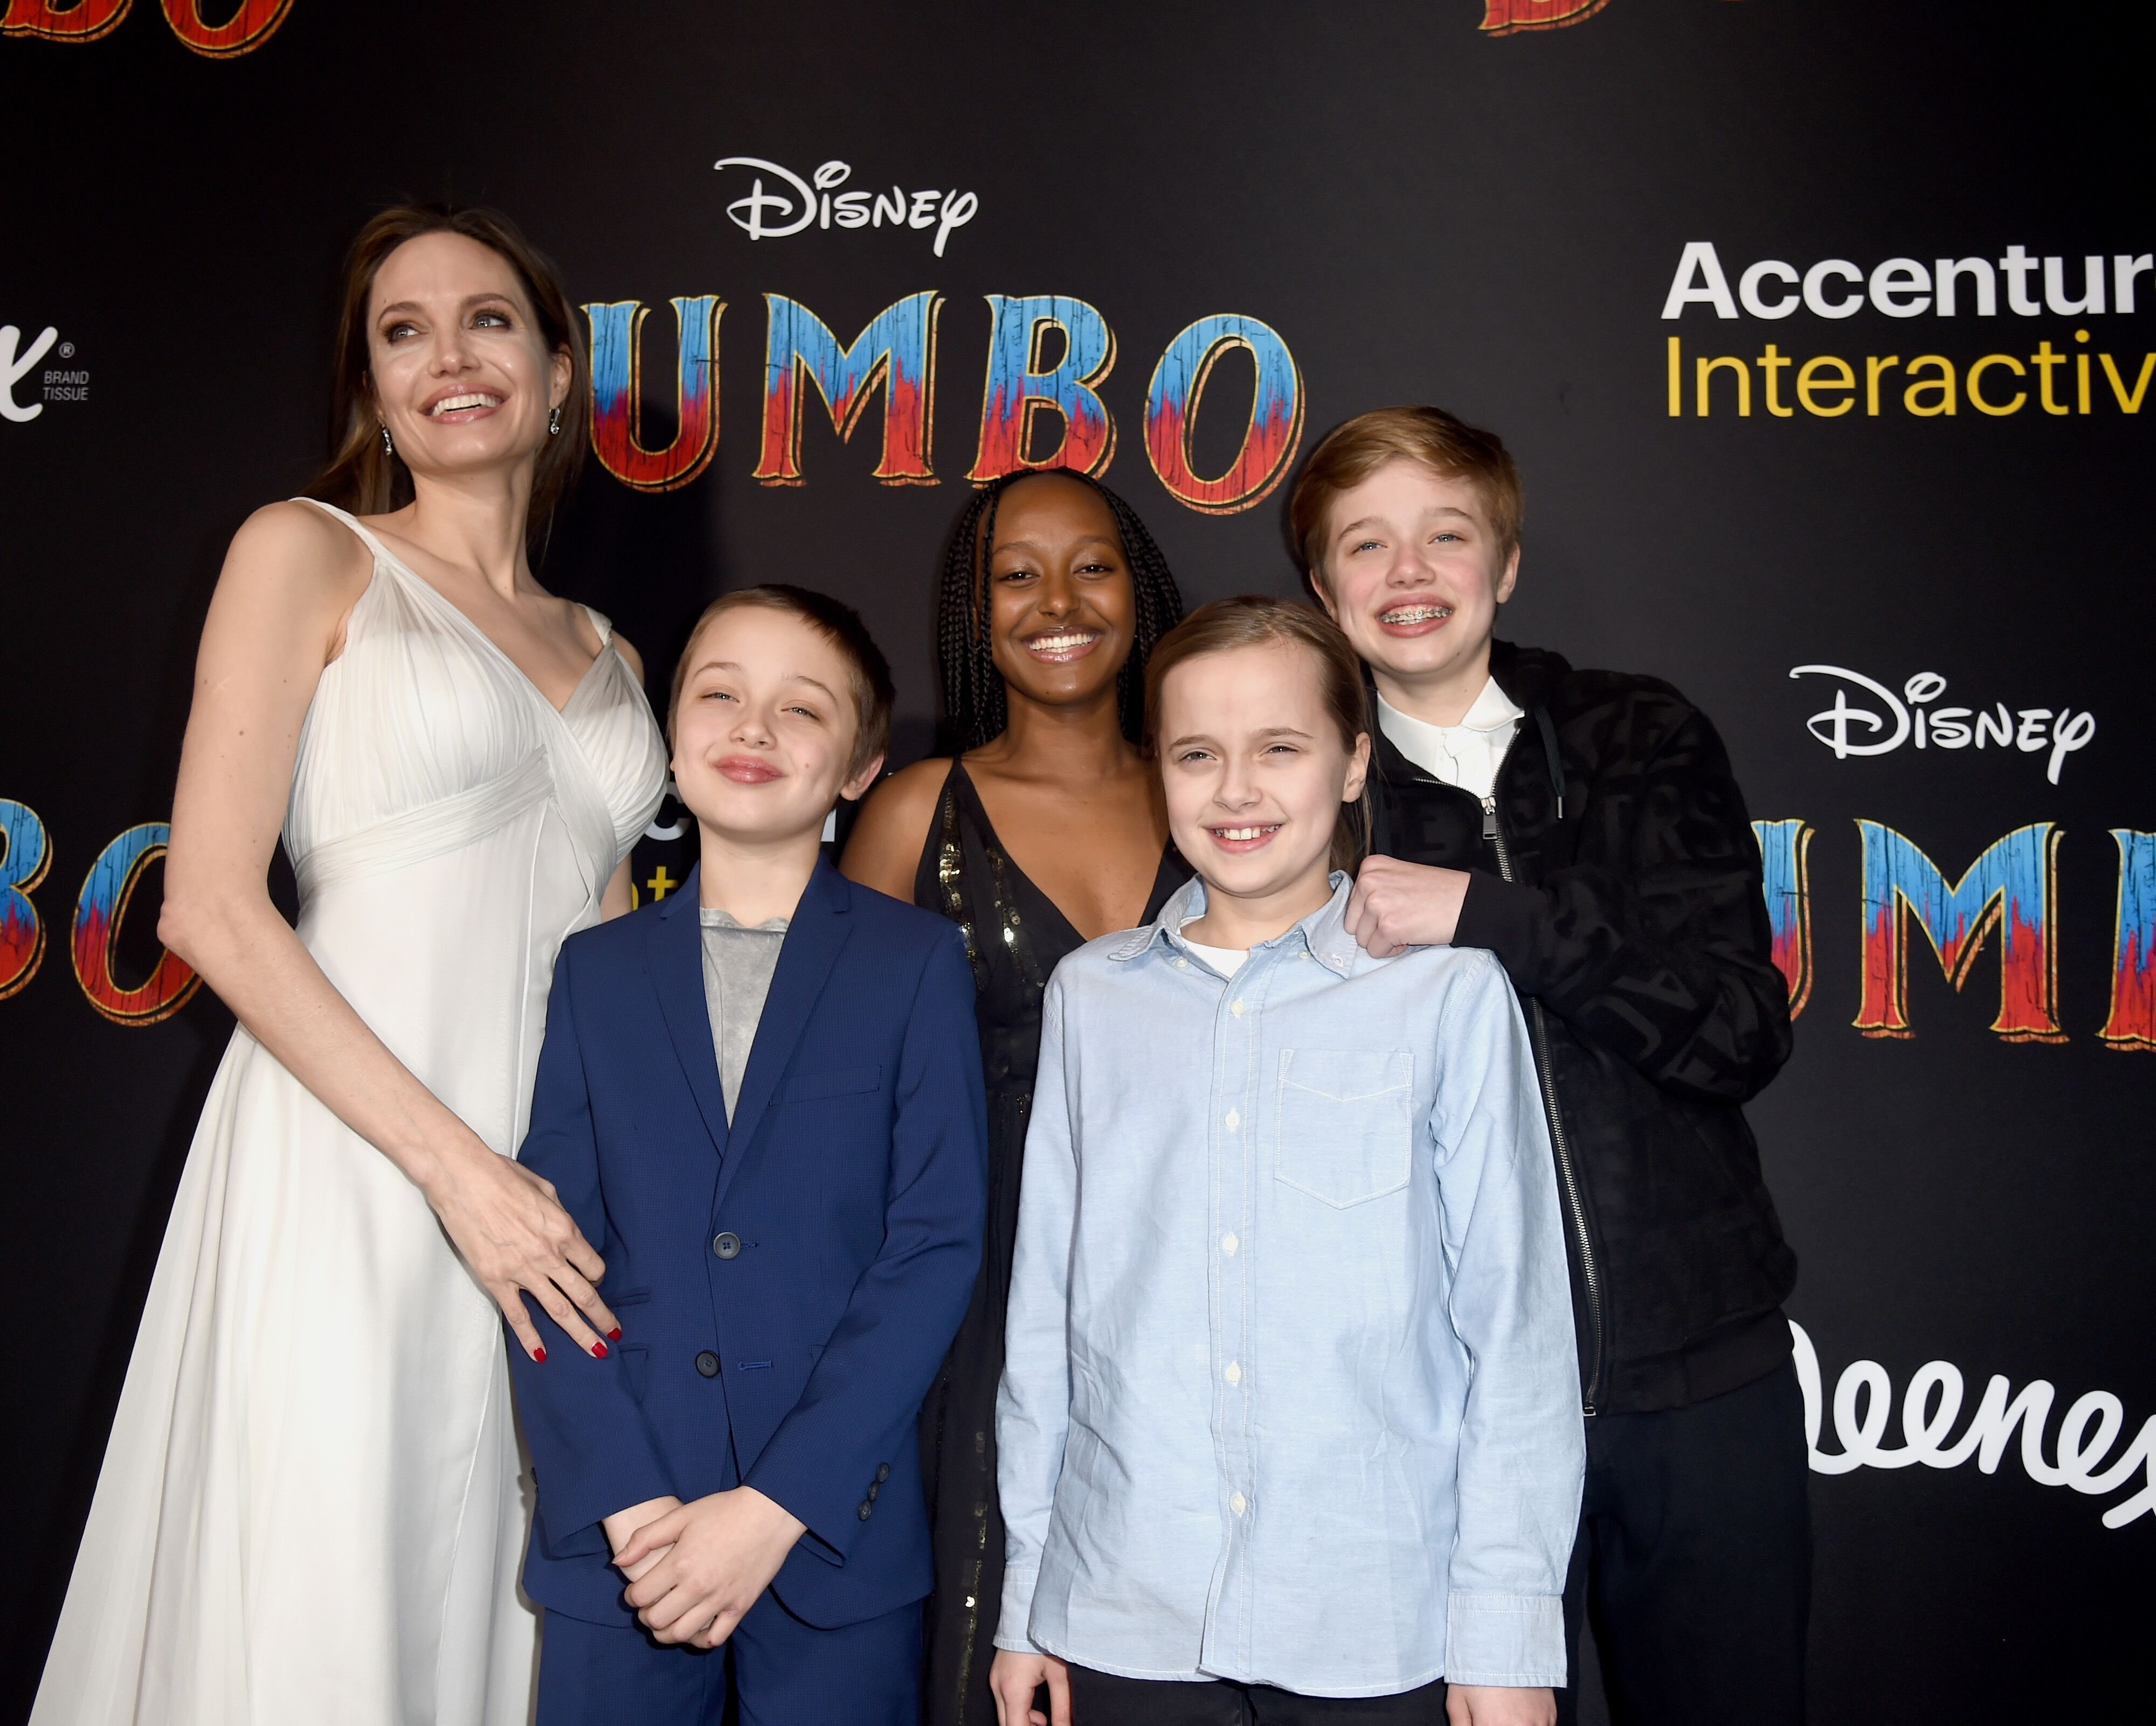 """Angelina Jolie, Knox Leon Jolie-Pitt, Zahara Marley Jolie-Pitt, Vivienne Marcheline Jolie-Pitt, and Shiloh Nouvel Jolie-Pitt attend the premiere of Disney's """"Dumbo"""" at El Capitan Theatre on March 11, 2019 in Los Angeles, California. 